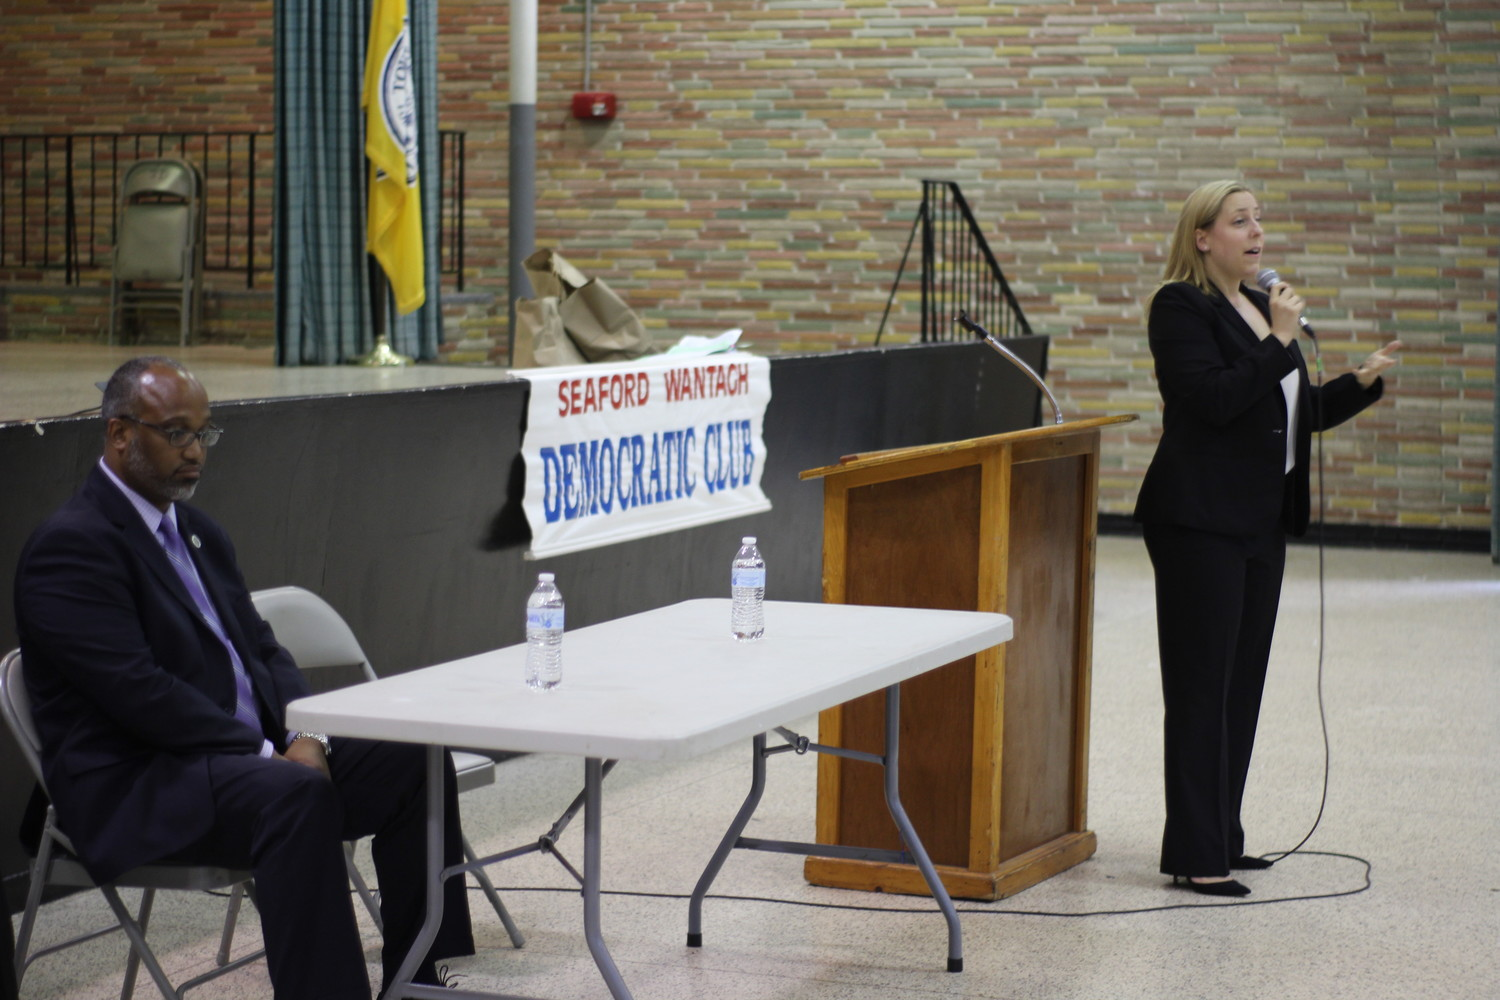 Shirley about spoke Gregory's failed campaign to unseat Peter King in 2016, as well as his comments about ex-Suffolk County District Attorney Thomas Spota.